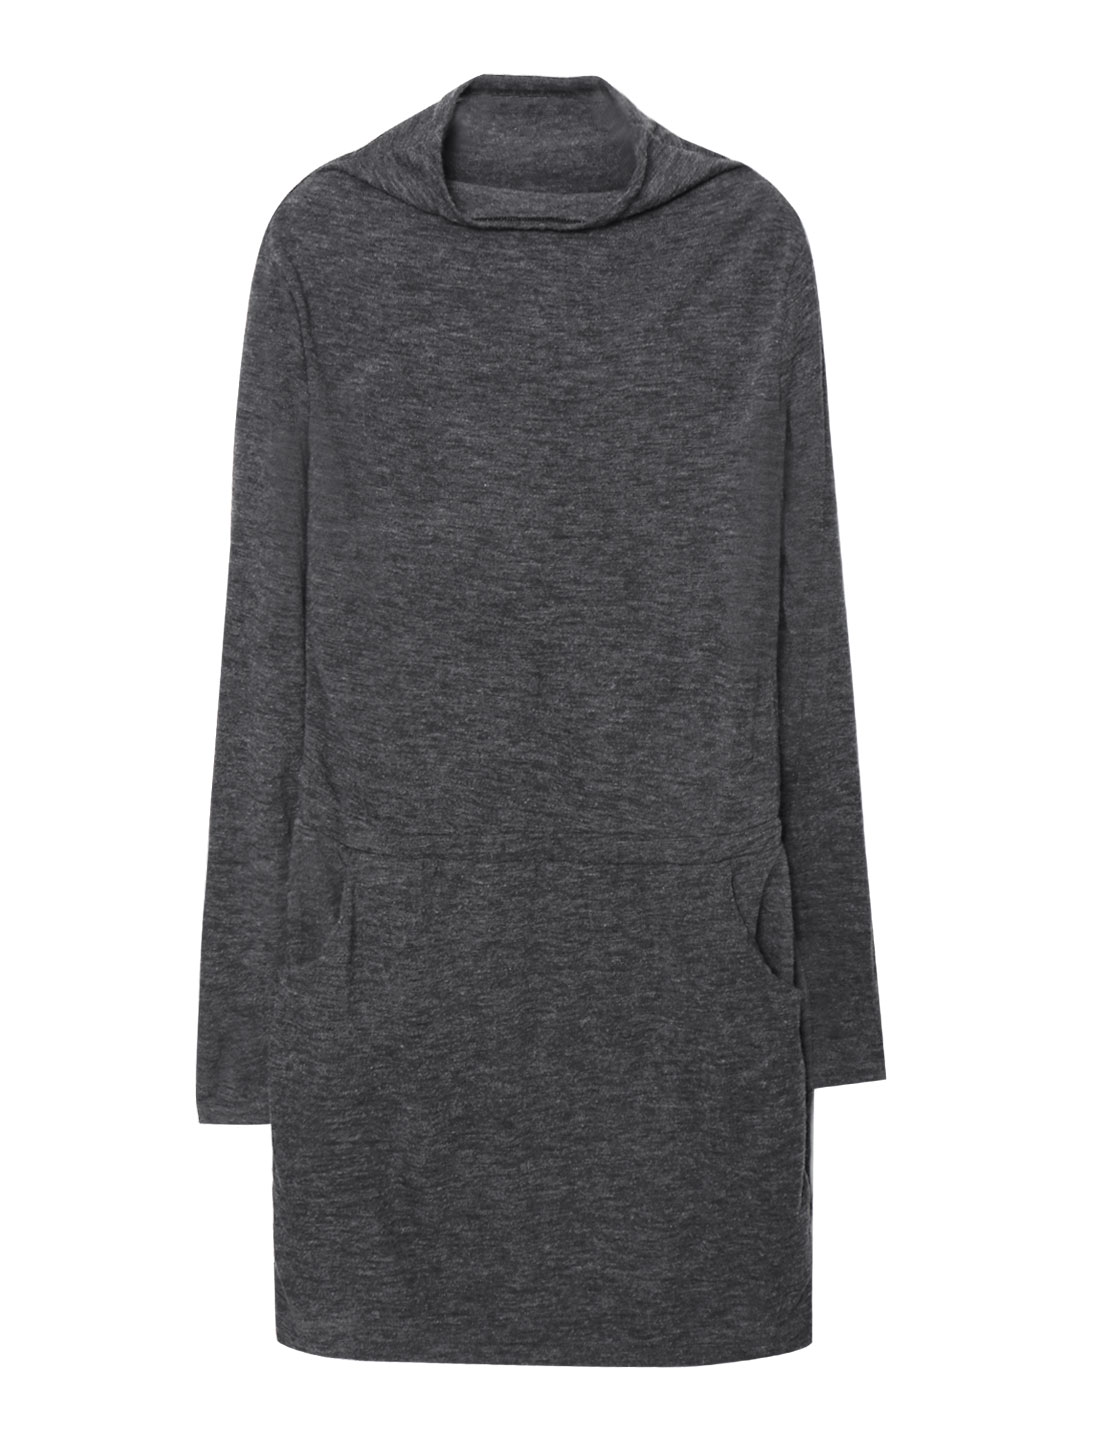 Women Long Sleeves Cowl Neck Side Pockets Shift Dress Gray M